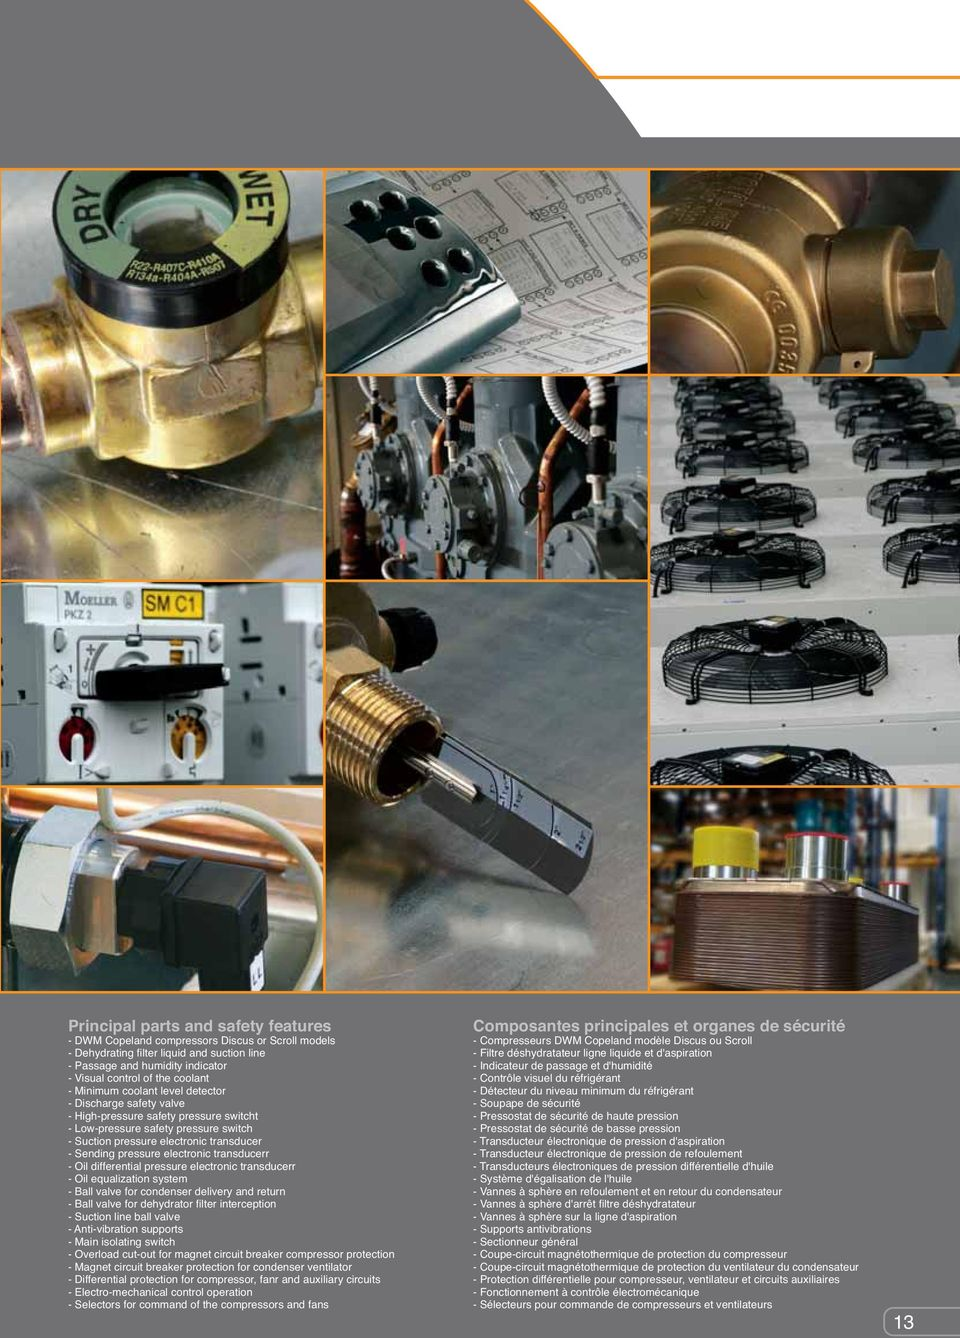 Catalogo Generale Centrali Frigorifere General Catalogue Electro Plate Circuitry Dragon Circuitselectro Electronic Transducerr Oil Differential Pressure Equalization System Ball Valve For